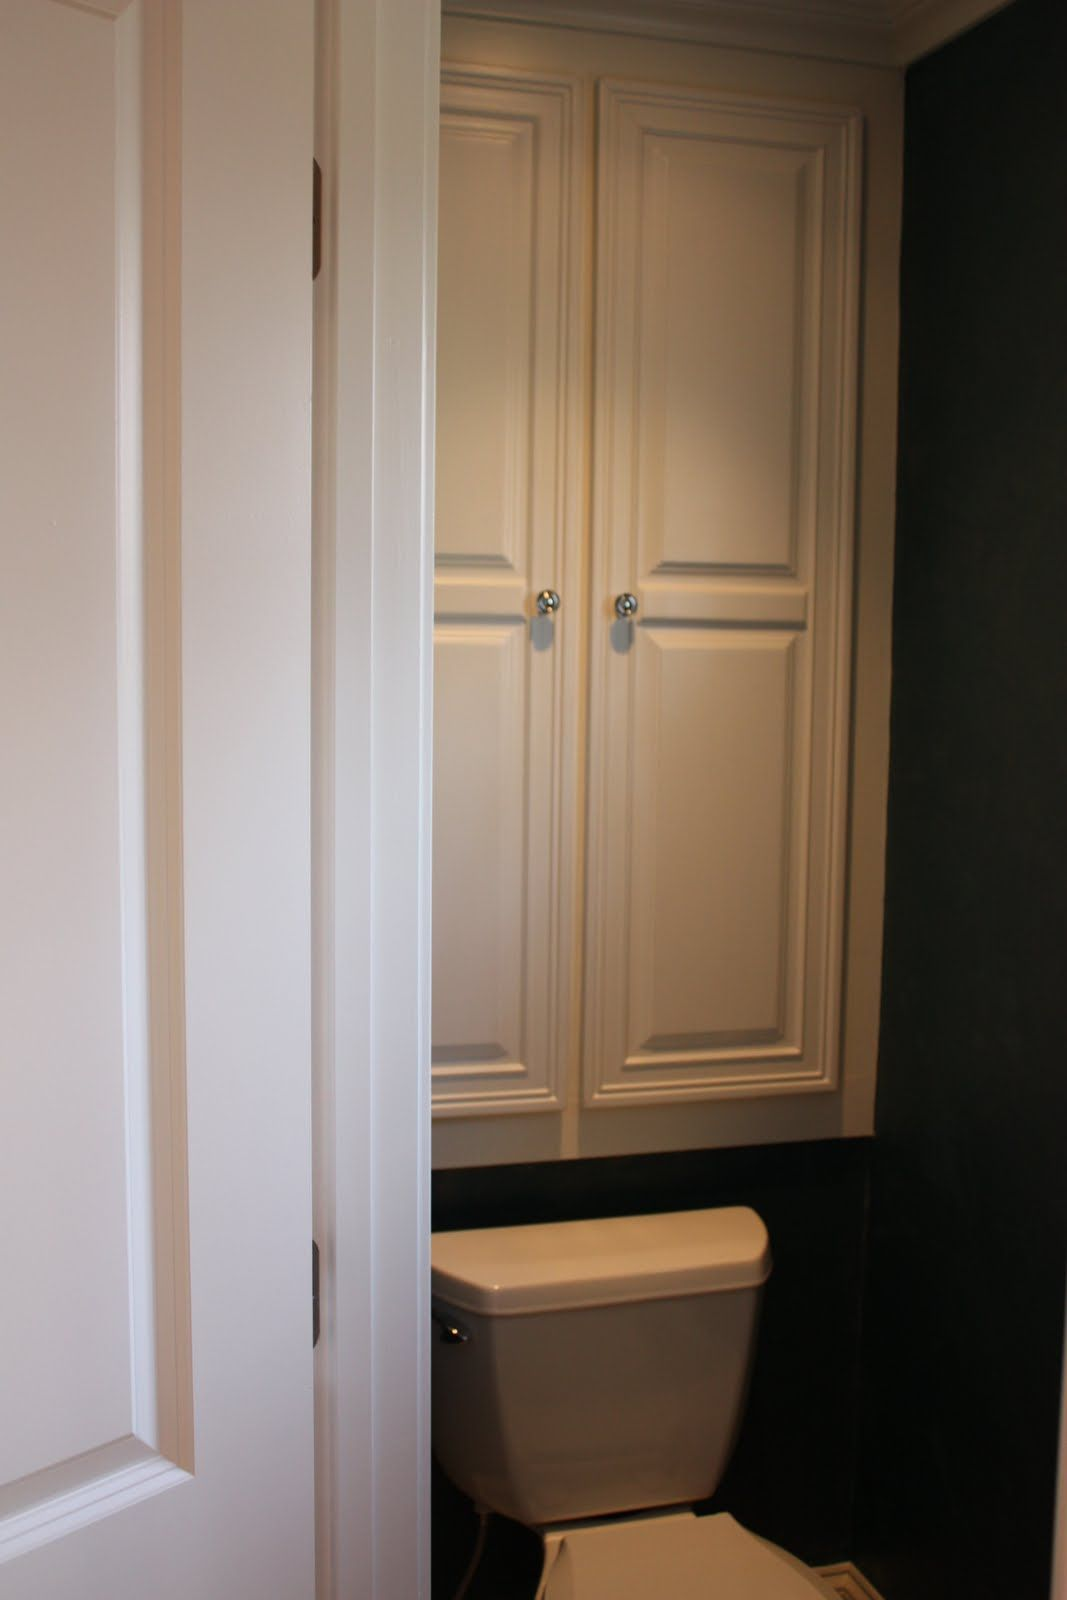 Cabinet Over Toilet This Is Awesome We Definitely Need